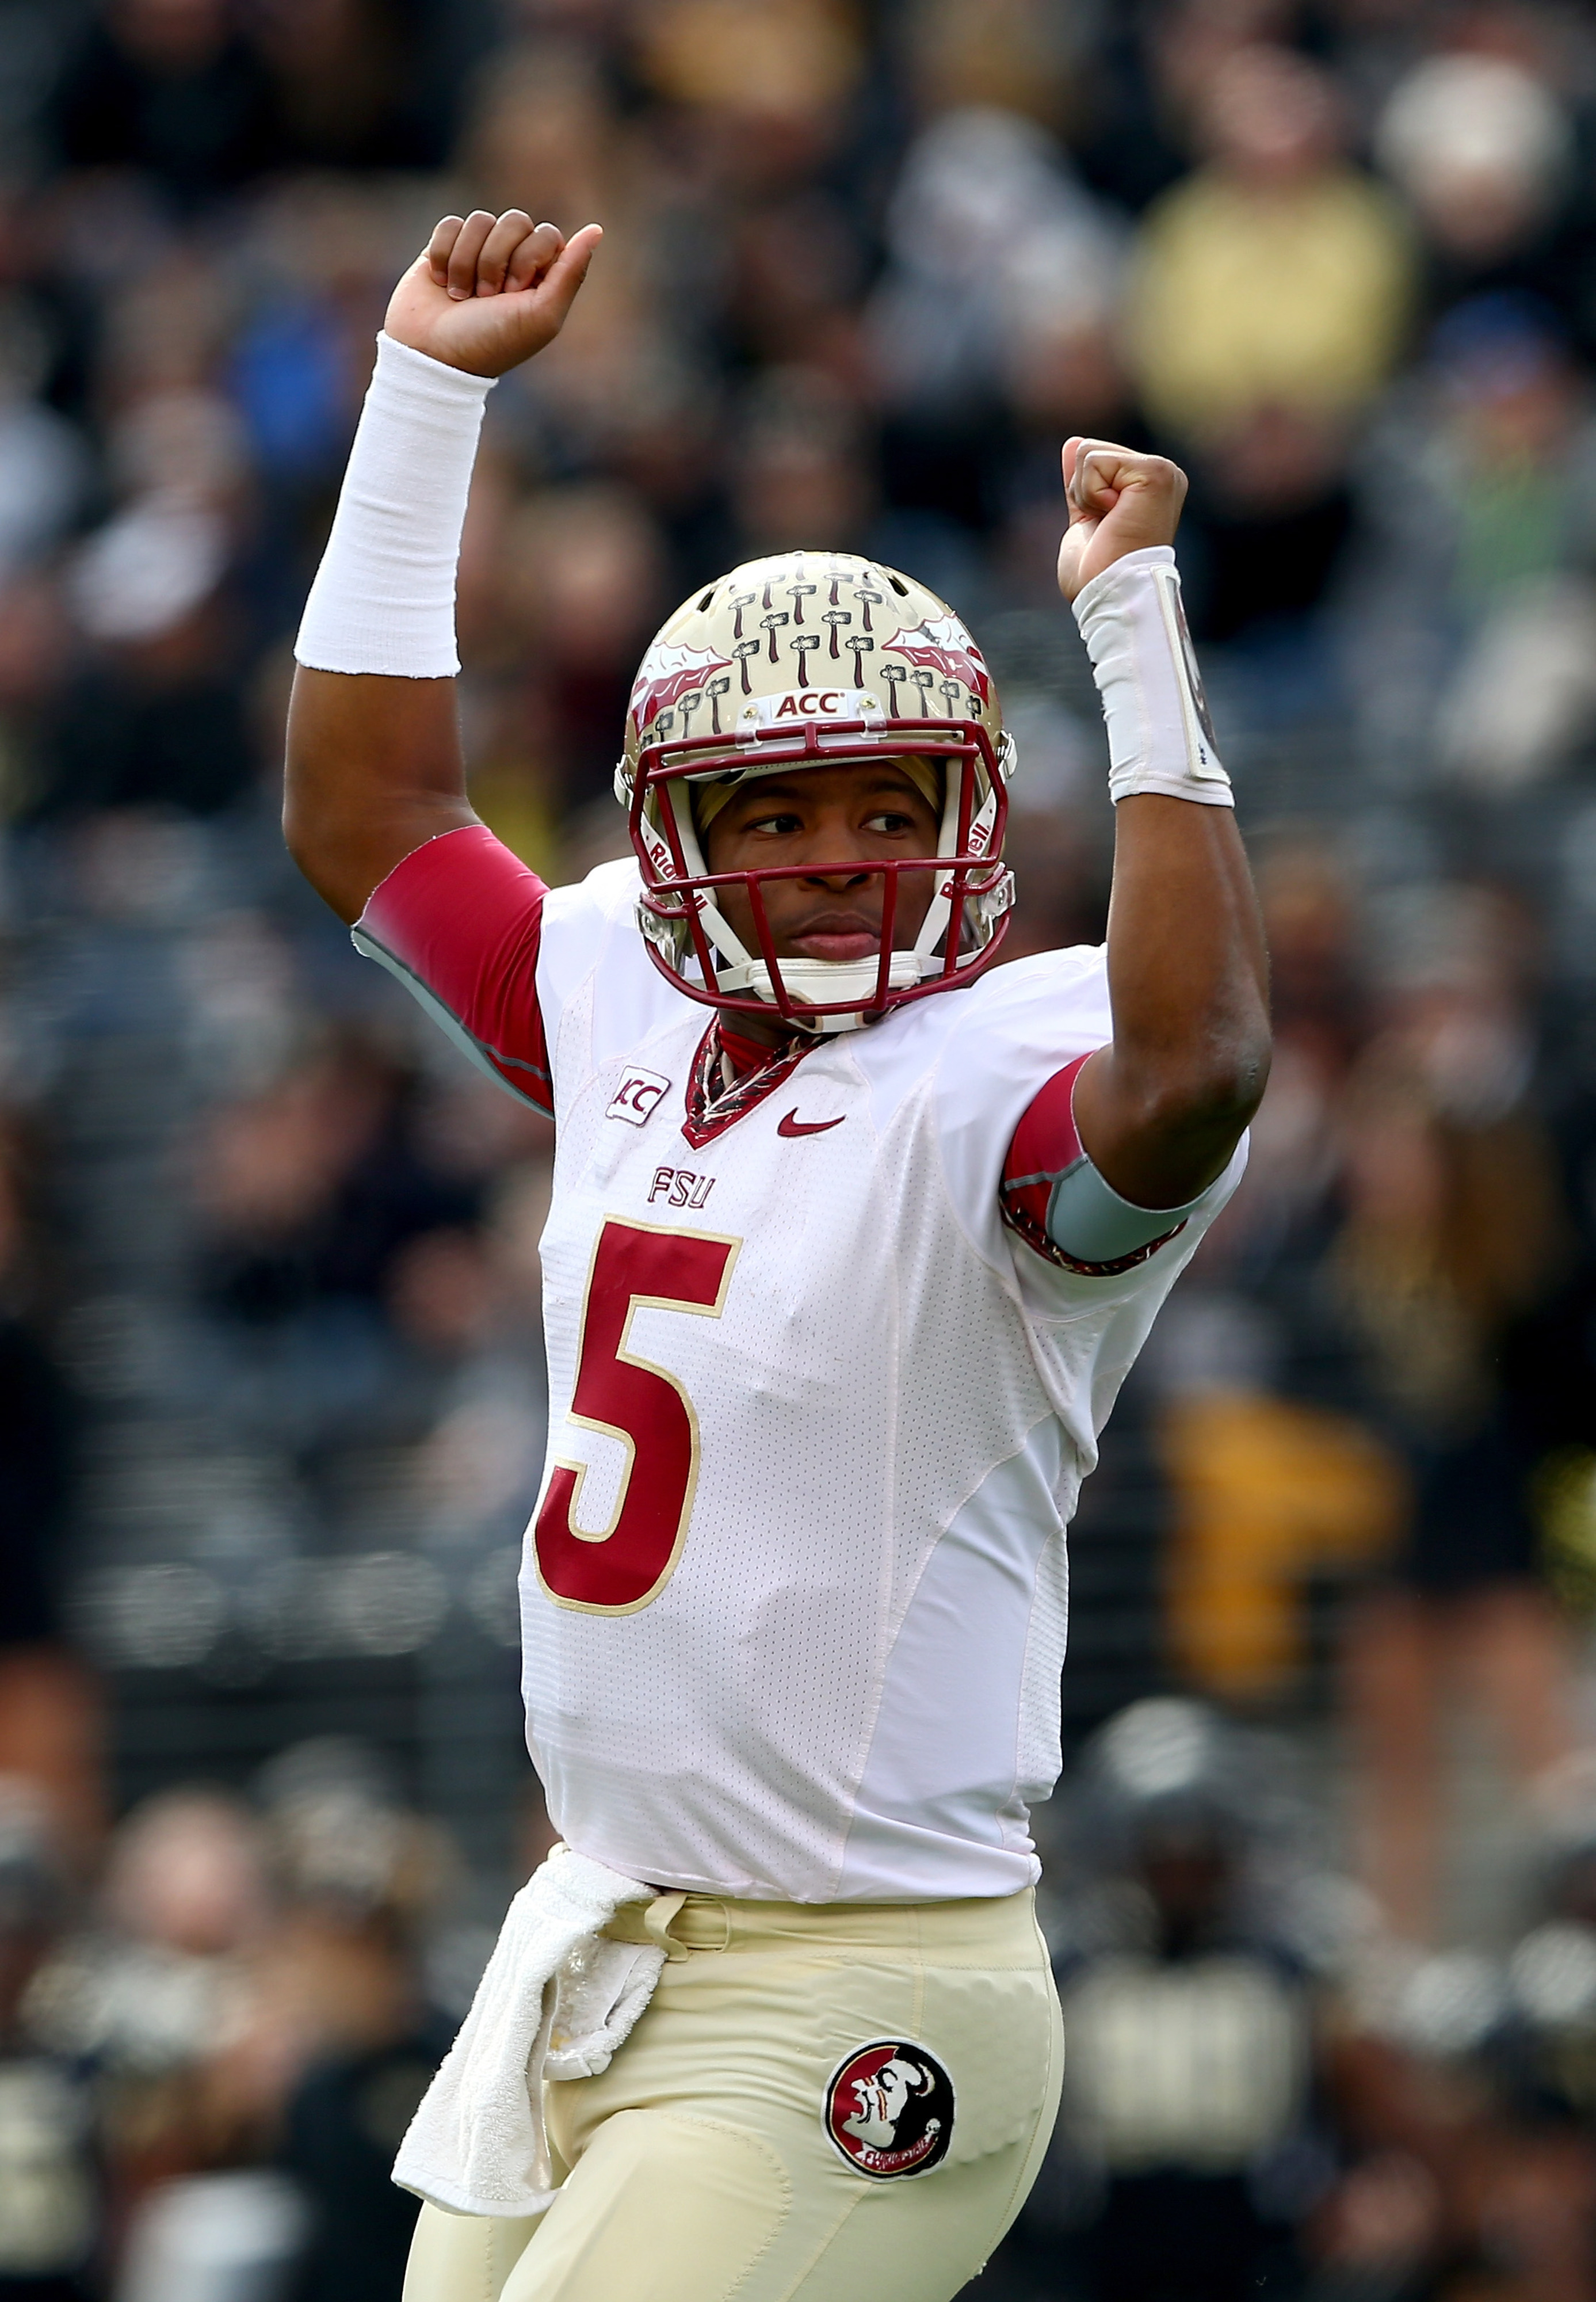 Florida State breaks Oklahoma's NCAA FBS record for total points in a season